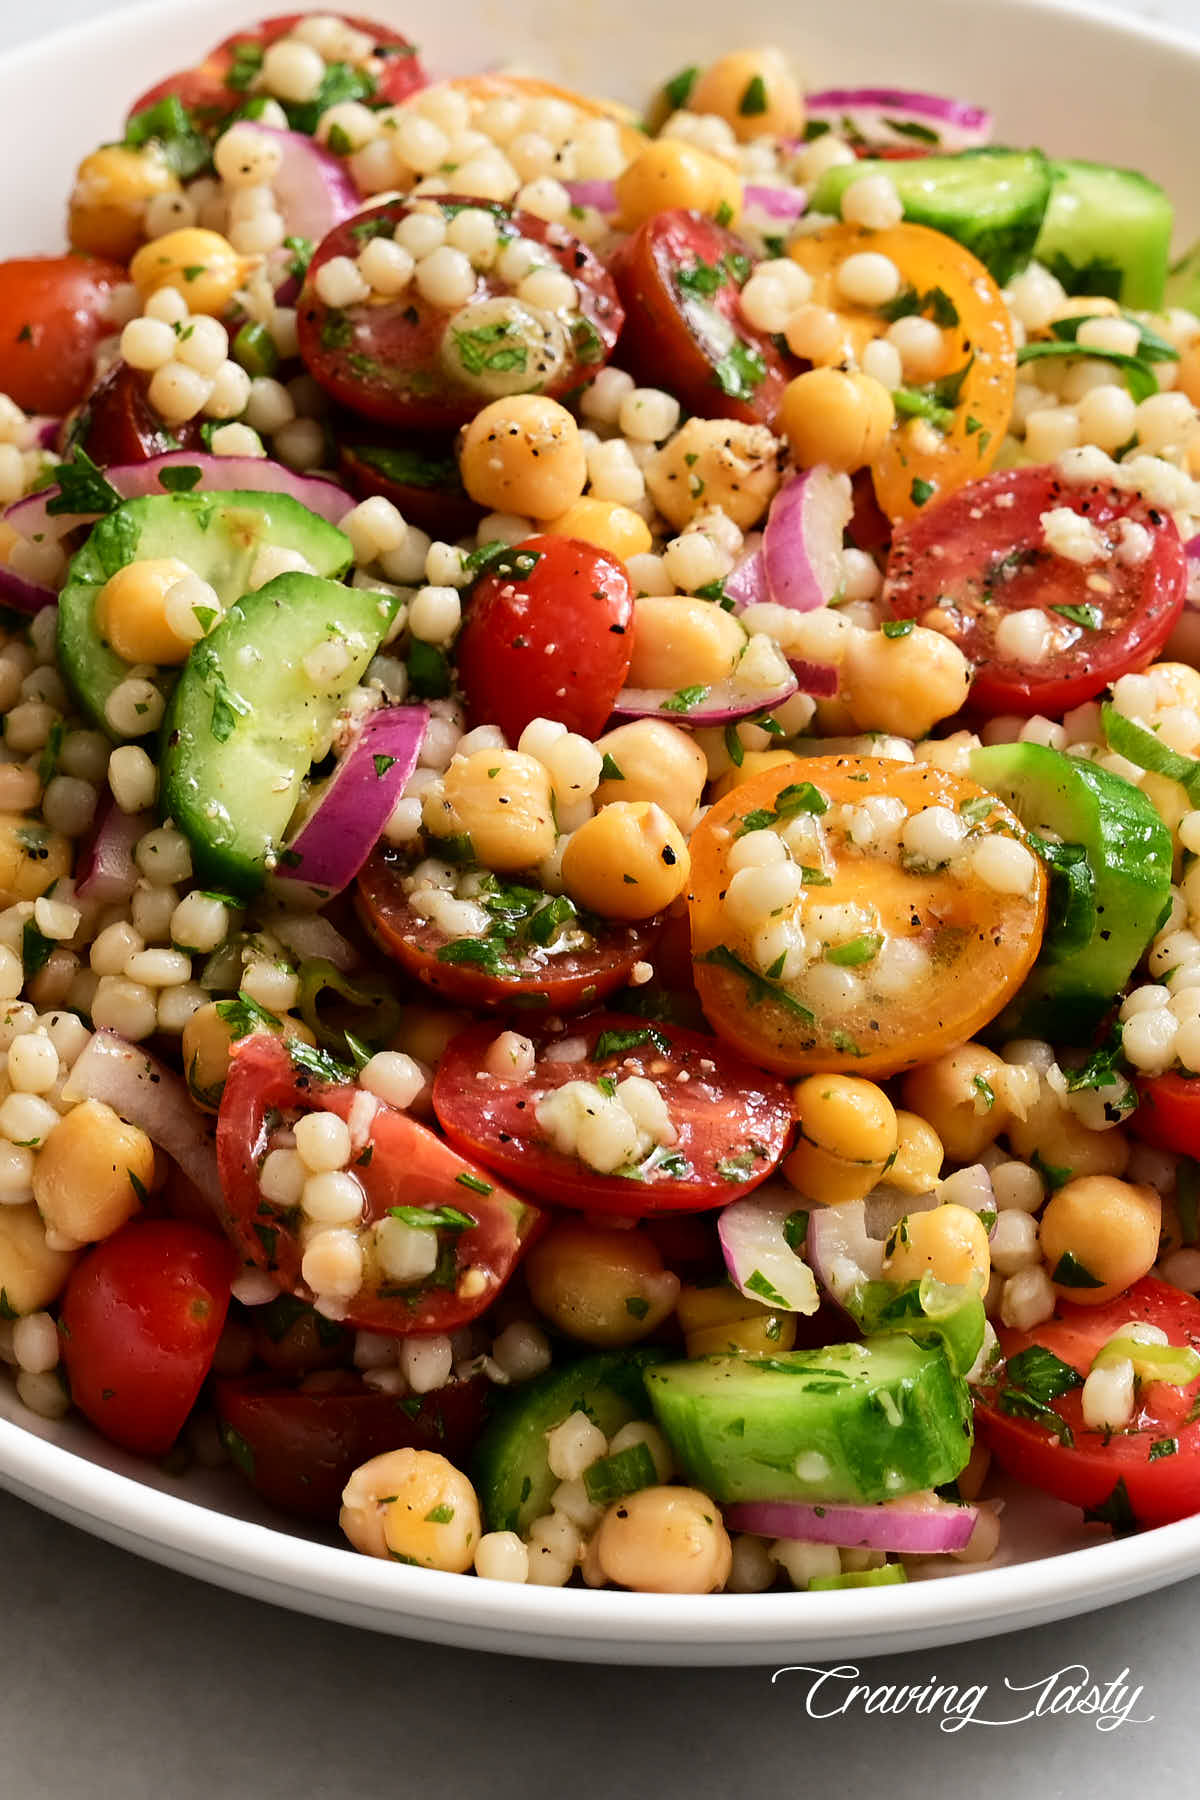 Close up of cherry tomatoes, Israeli couscous, cucumbers, red onion and herbs in a bowl to comprise an Israel couscous salad.